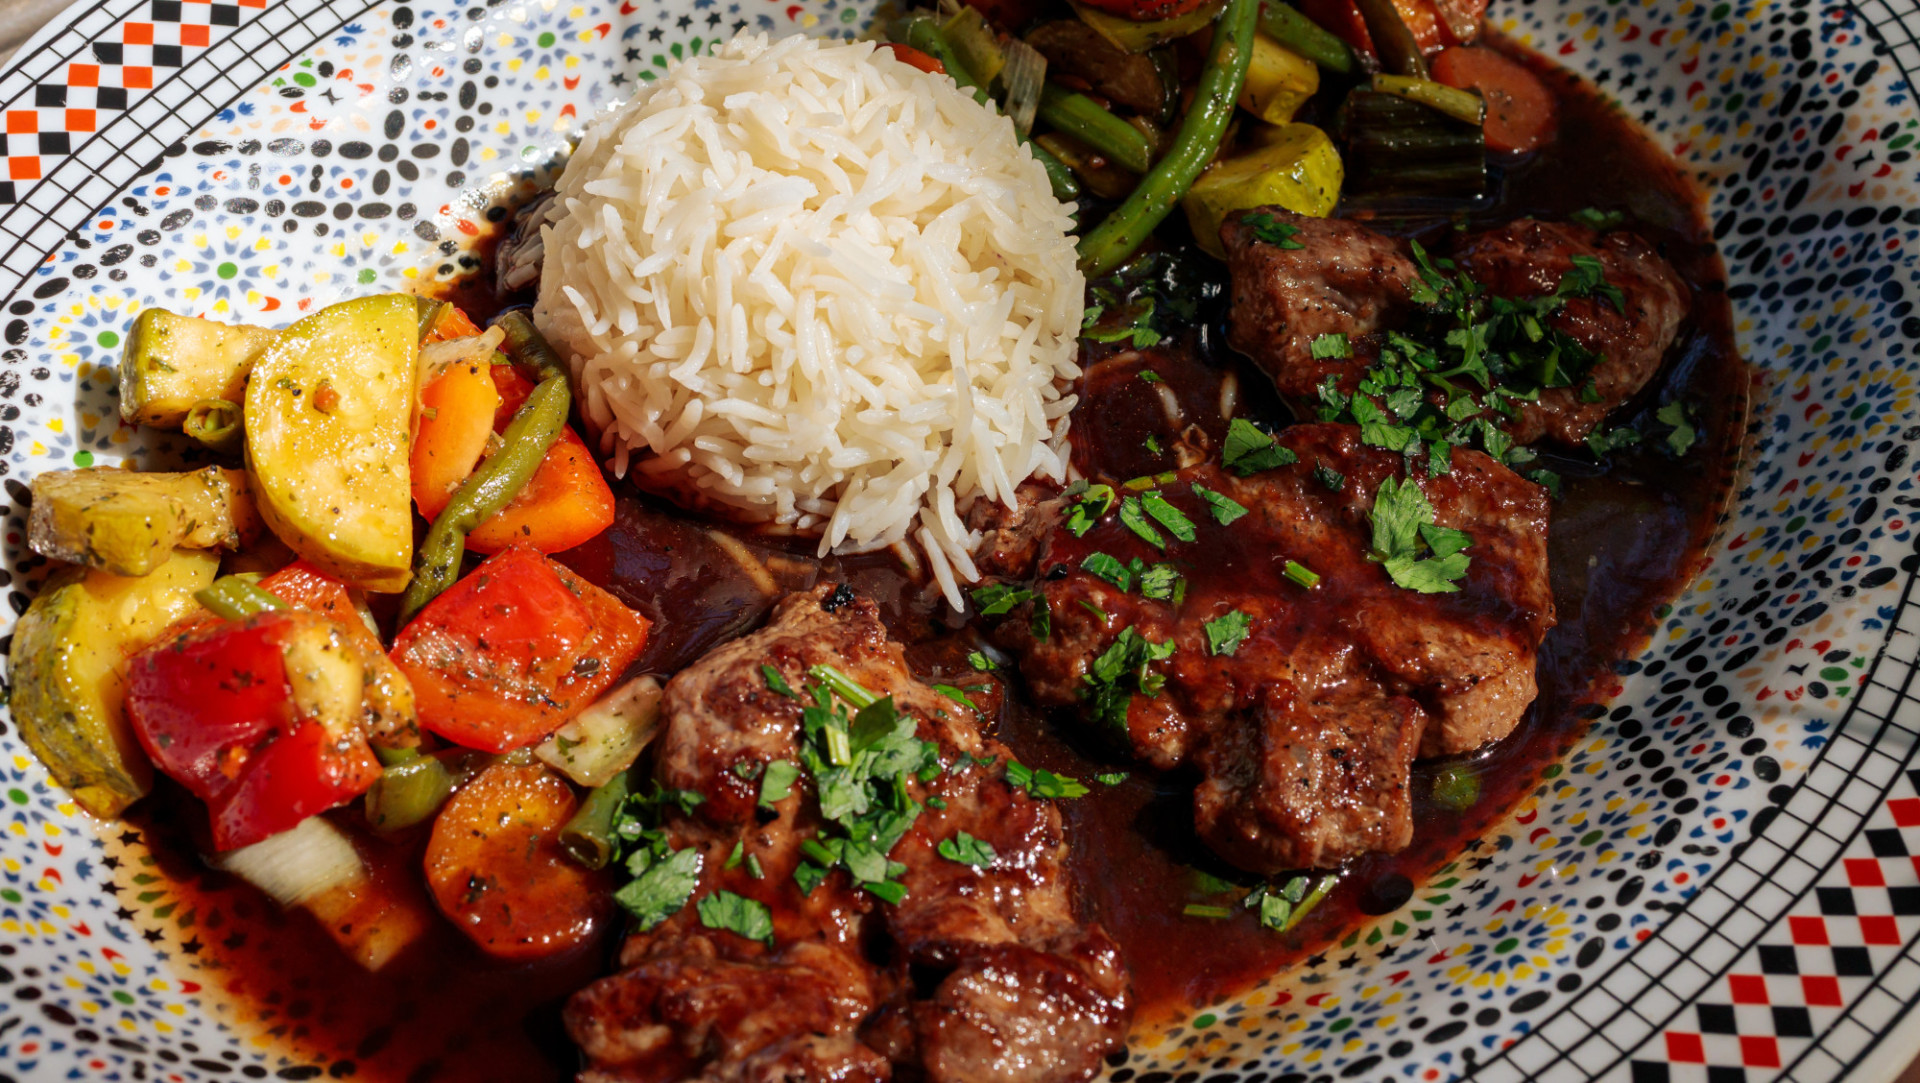 Plate with lamb, rice and grilled vegetables